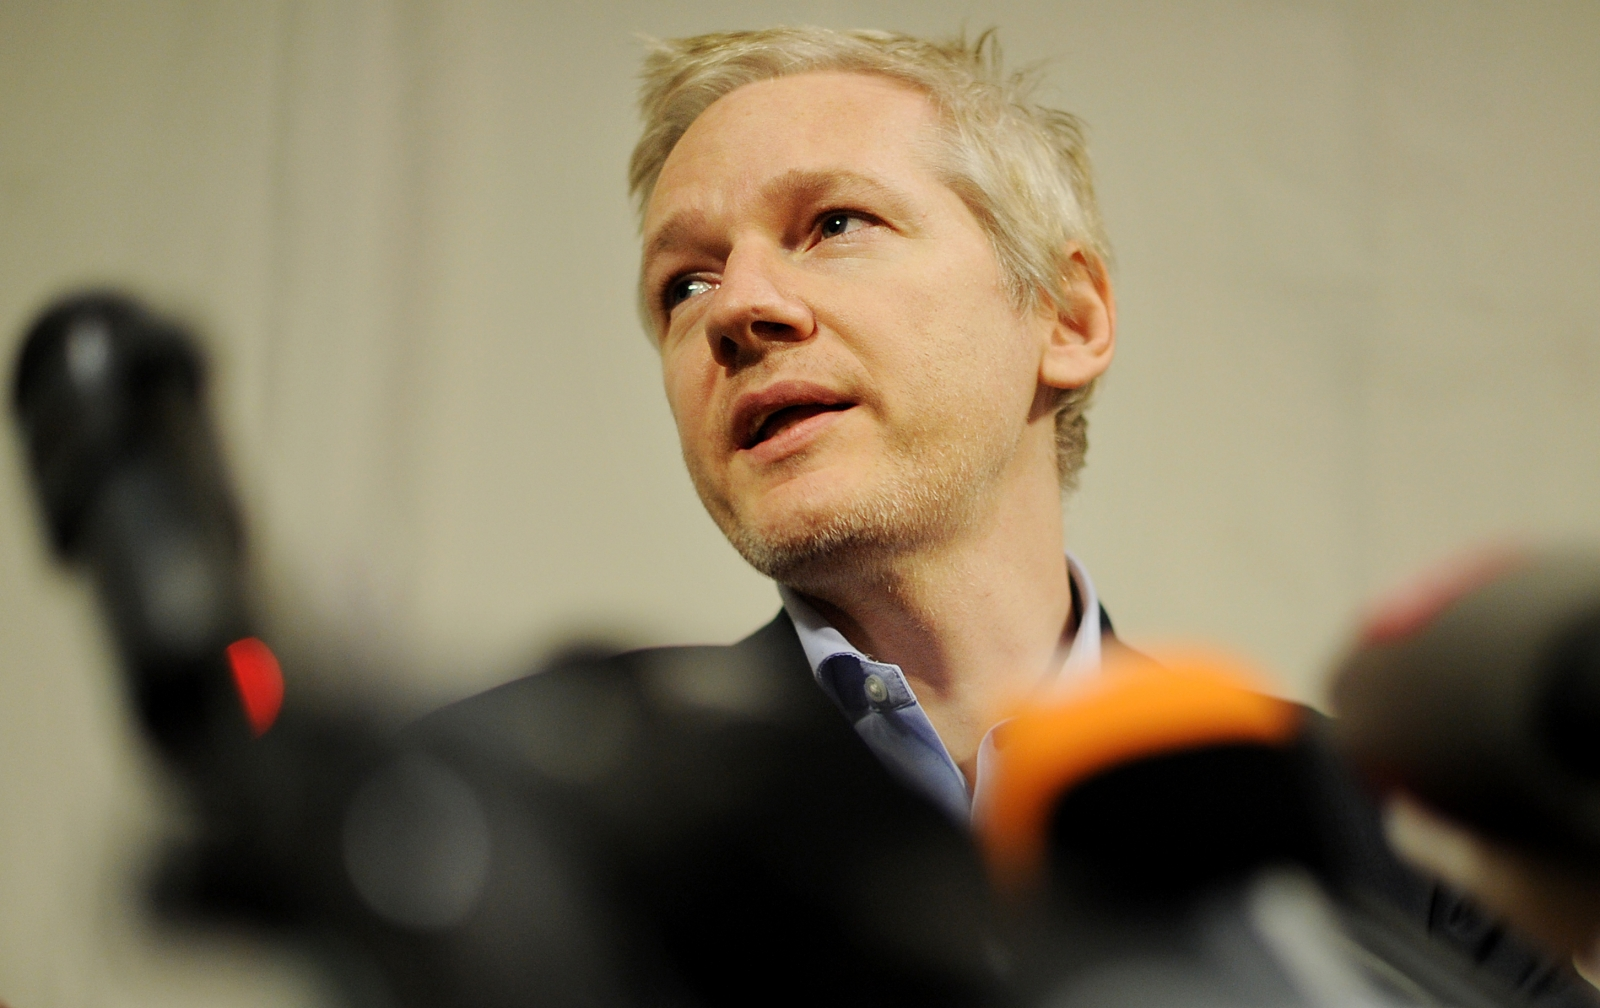 WikiLeaks founder Julian Assange speaks